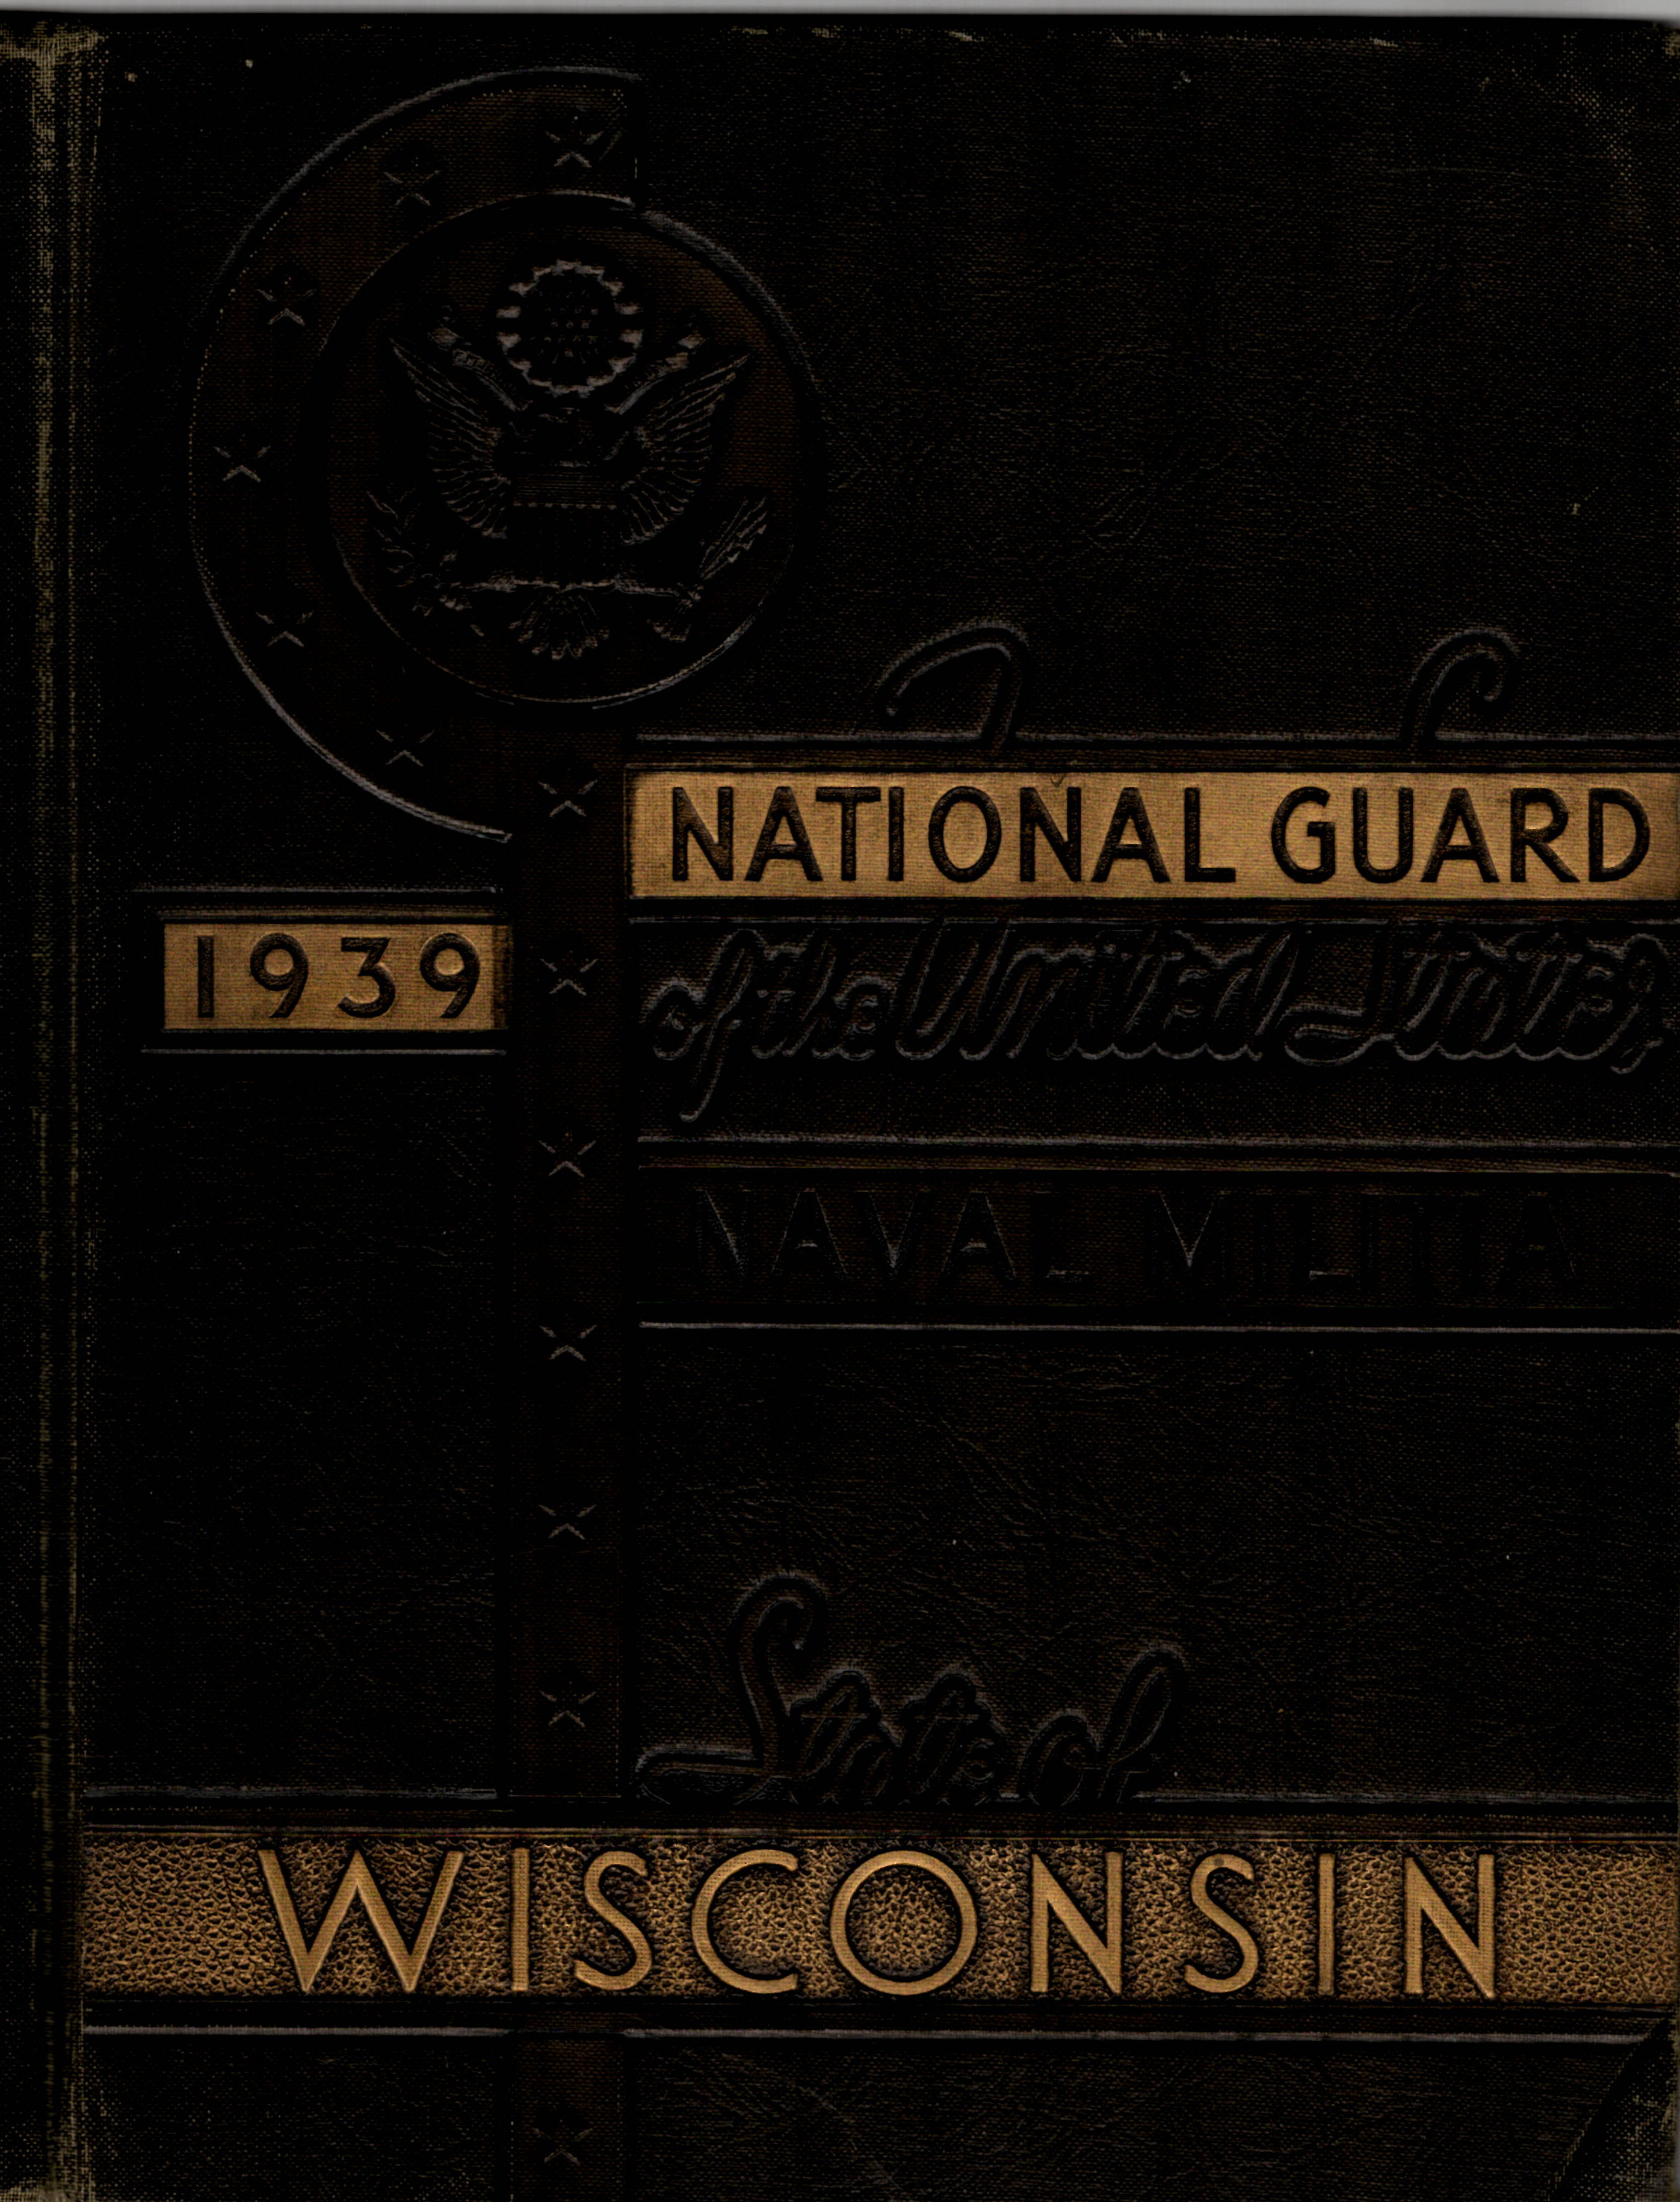 National Guard of the State of - Wisconsin 1939